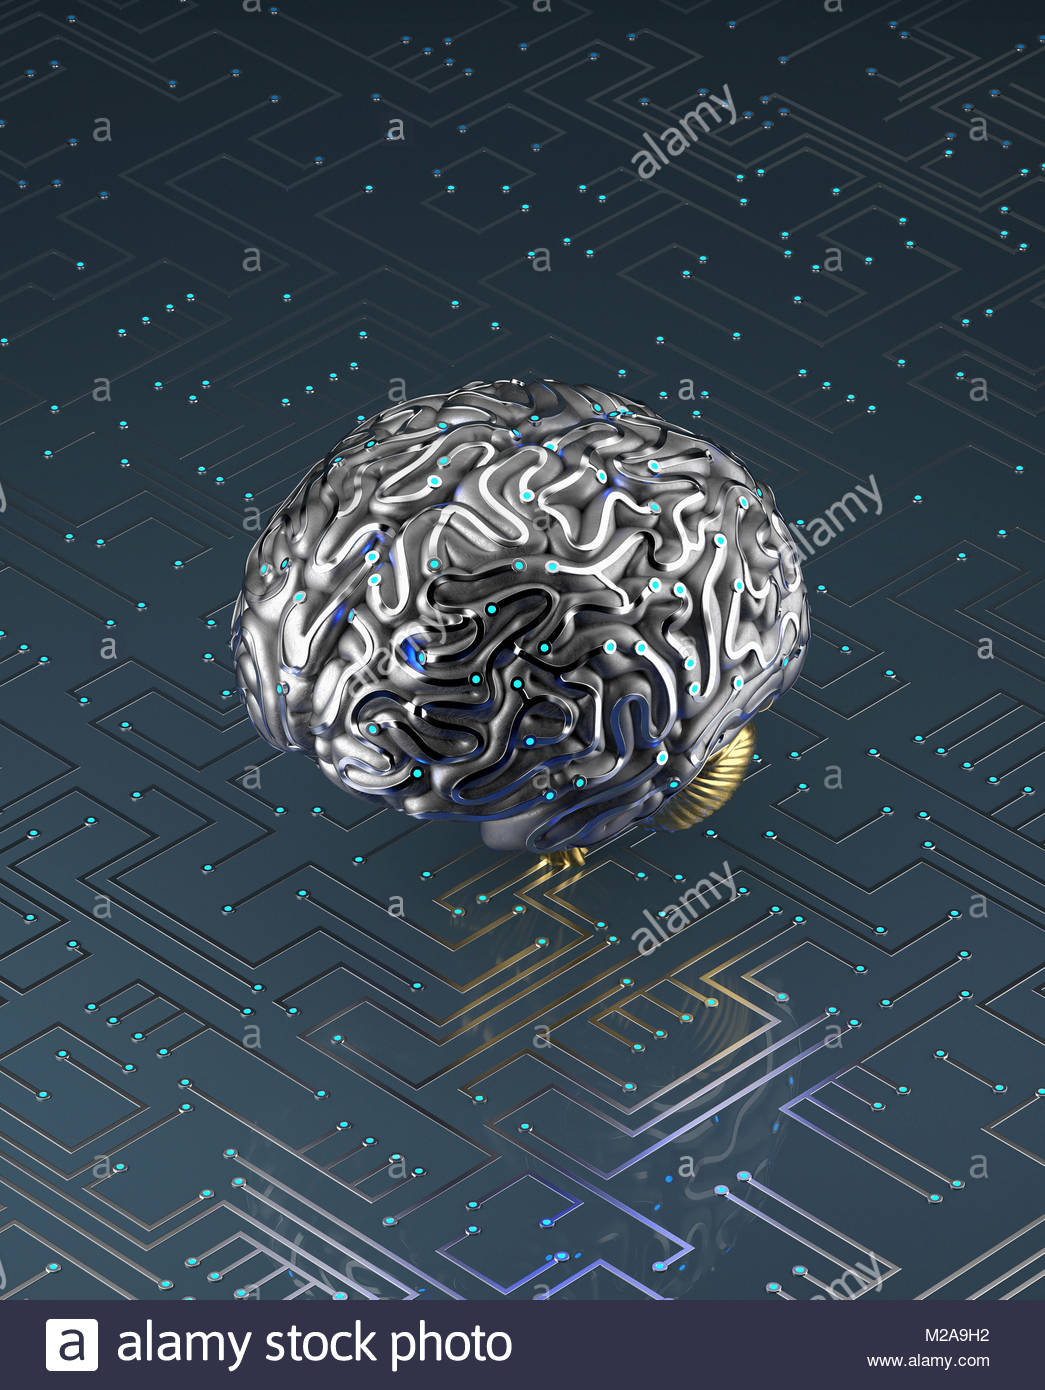 Artificial brain connected to circuit board - Stock Image